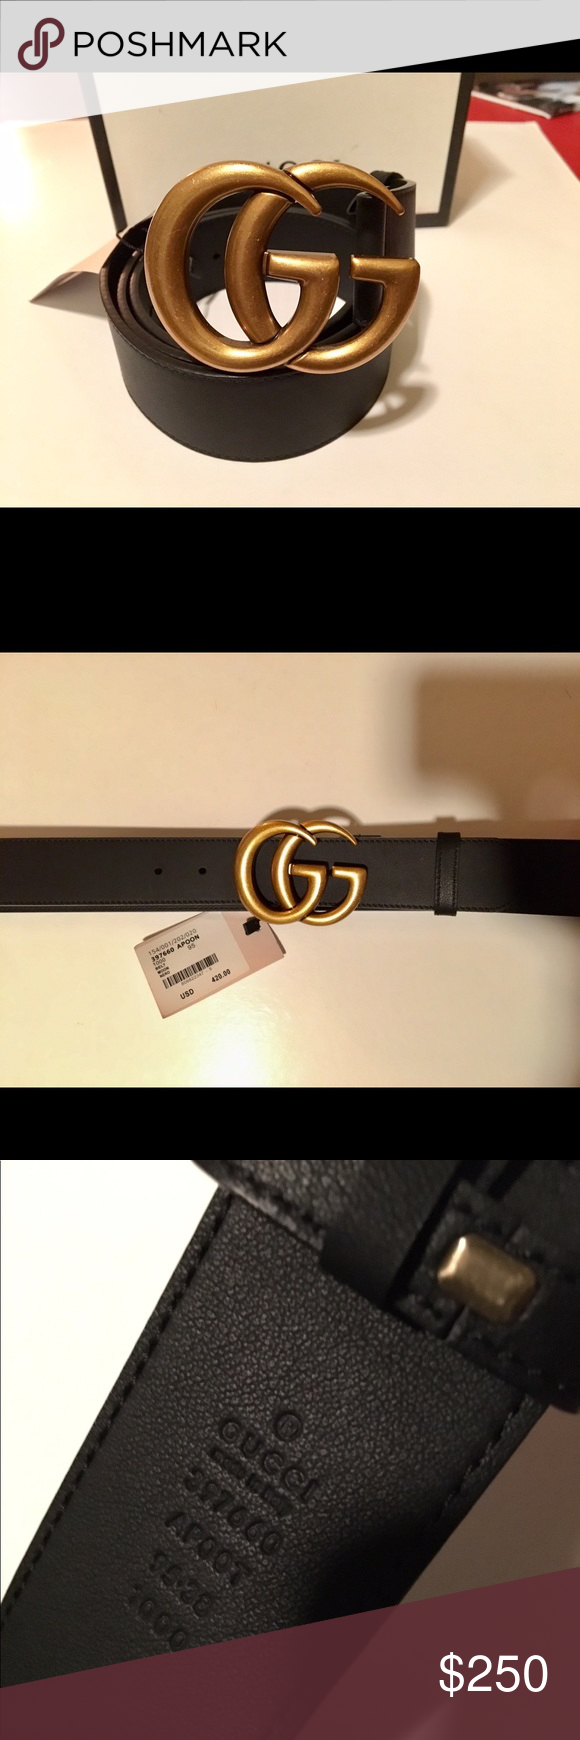 691f4296748 Black Gucci Marmont Belt with Gold Buckle Gucci smooth leather